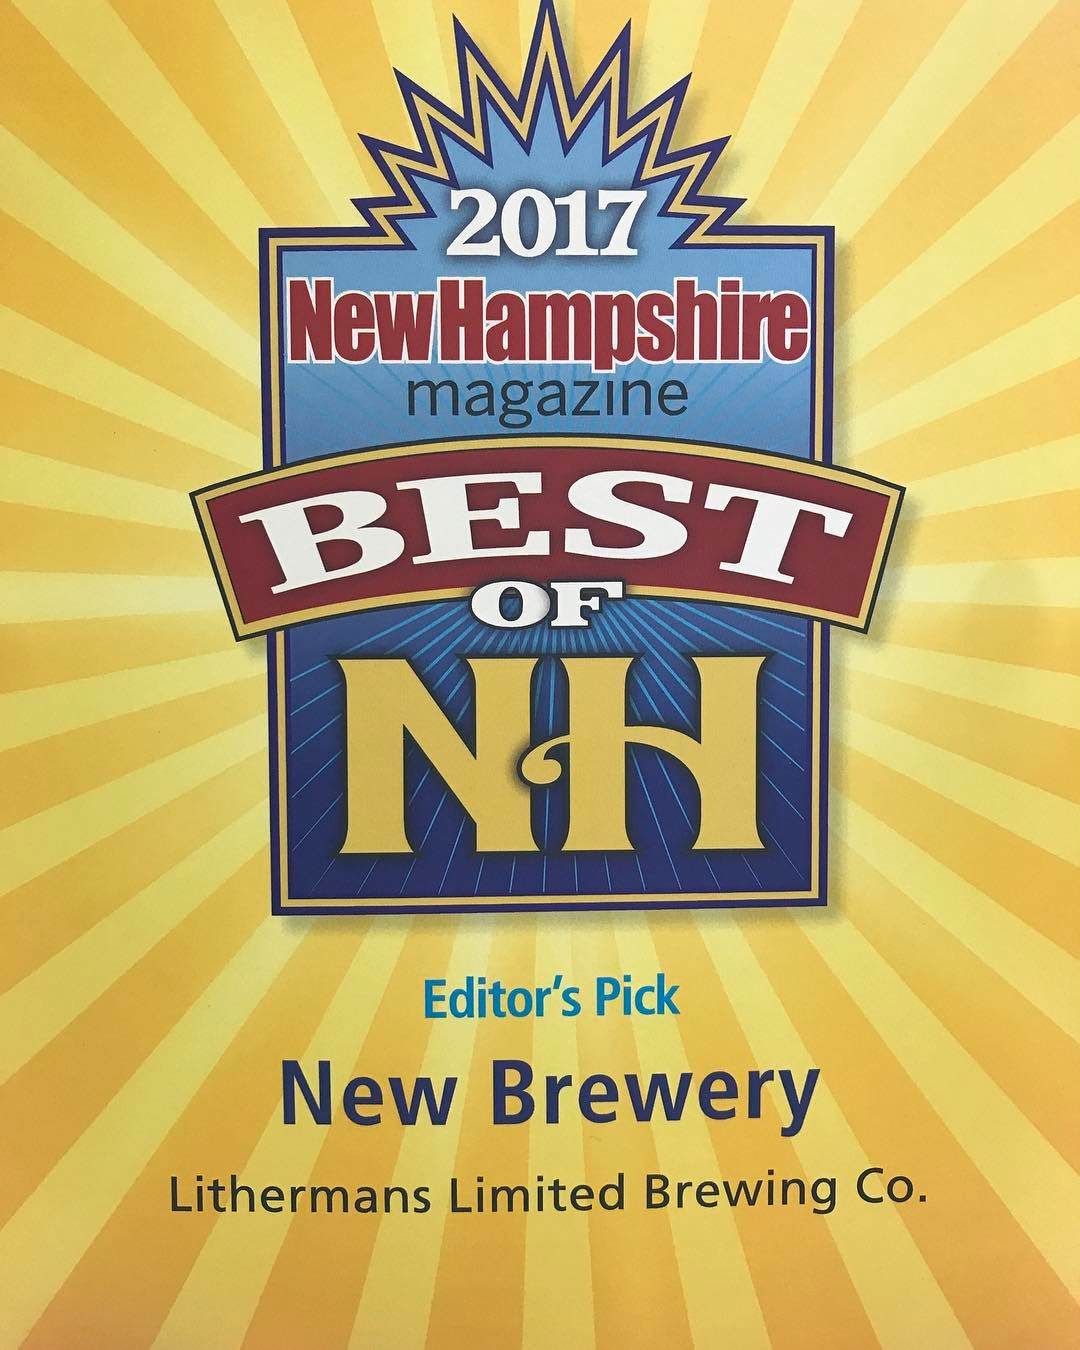 #lithermans #nhbeer #concordNhbrewed #howmuchcanyoucarry #MHPlikes NH